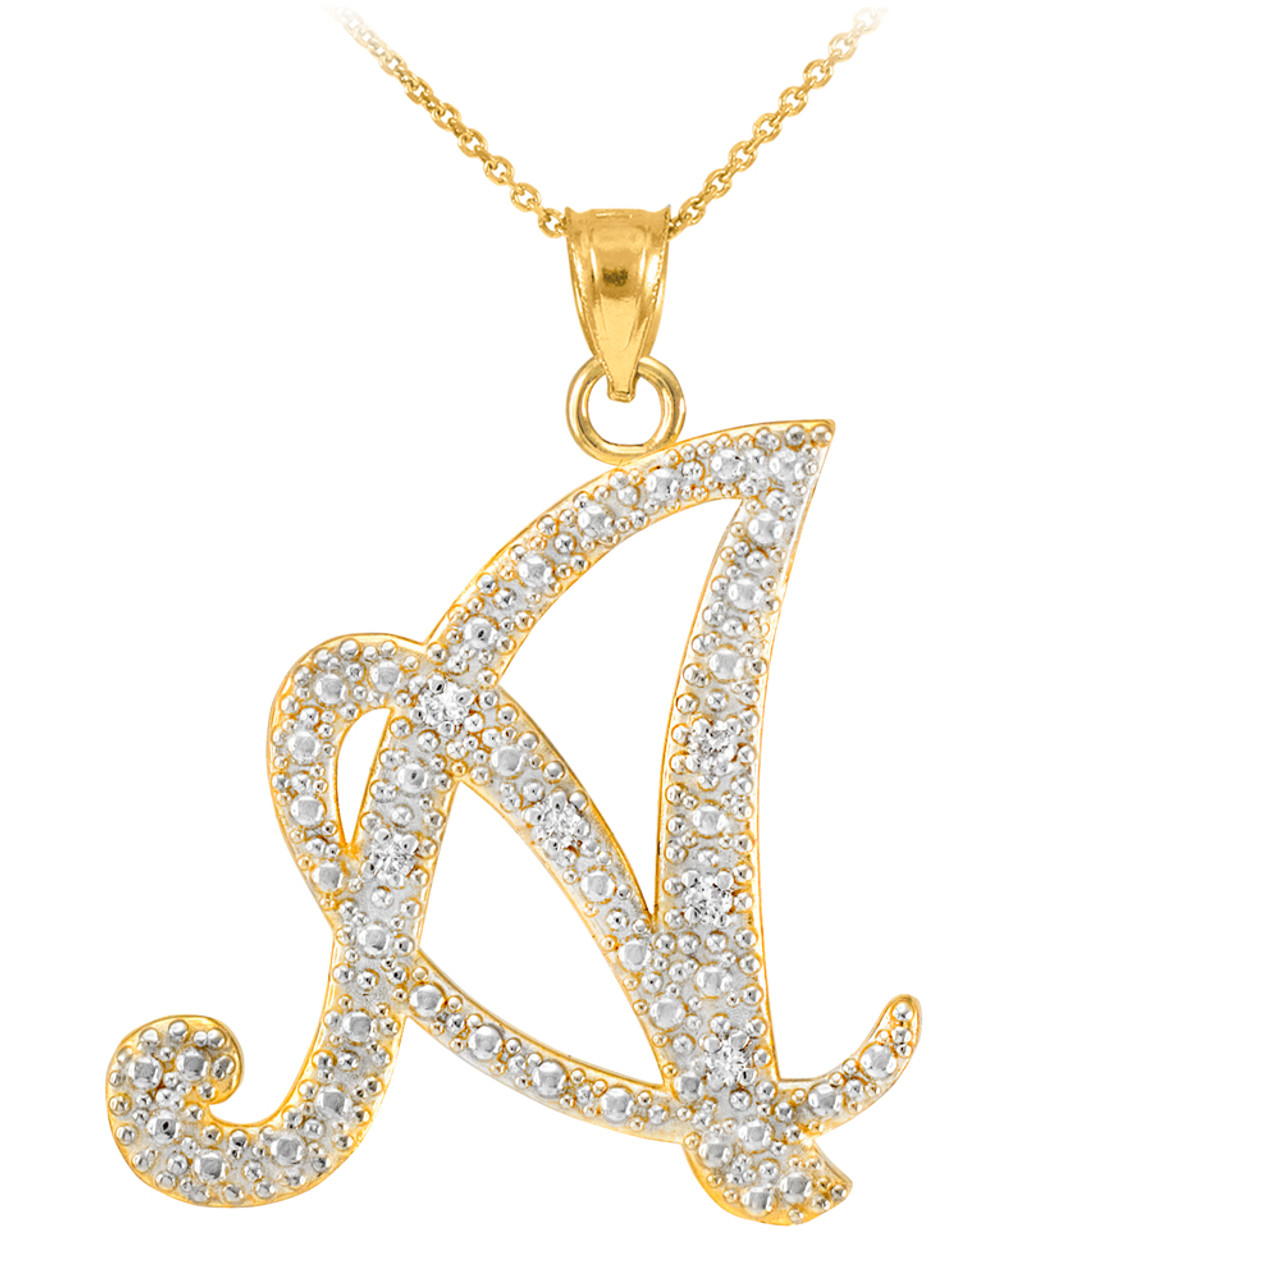 c custom smith cursive products mara necklace